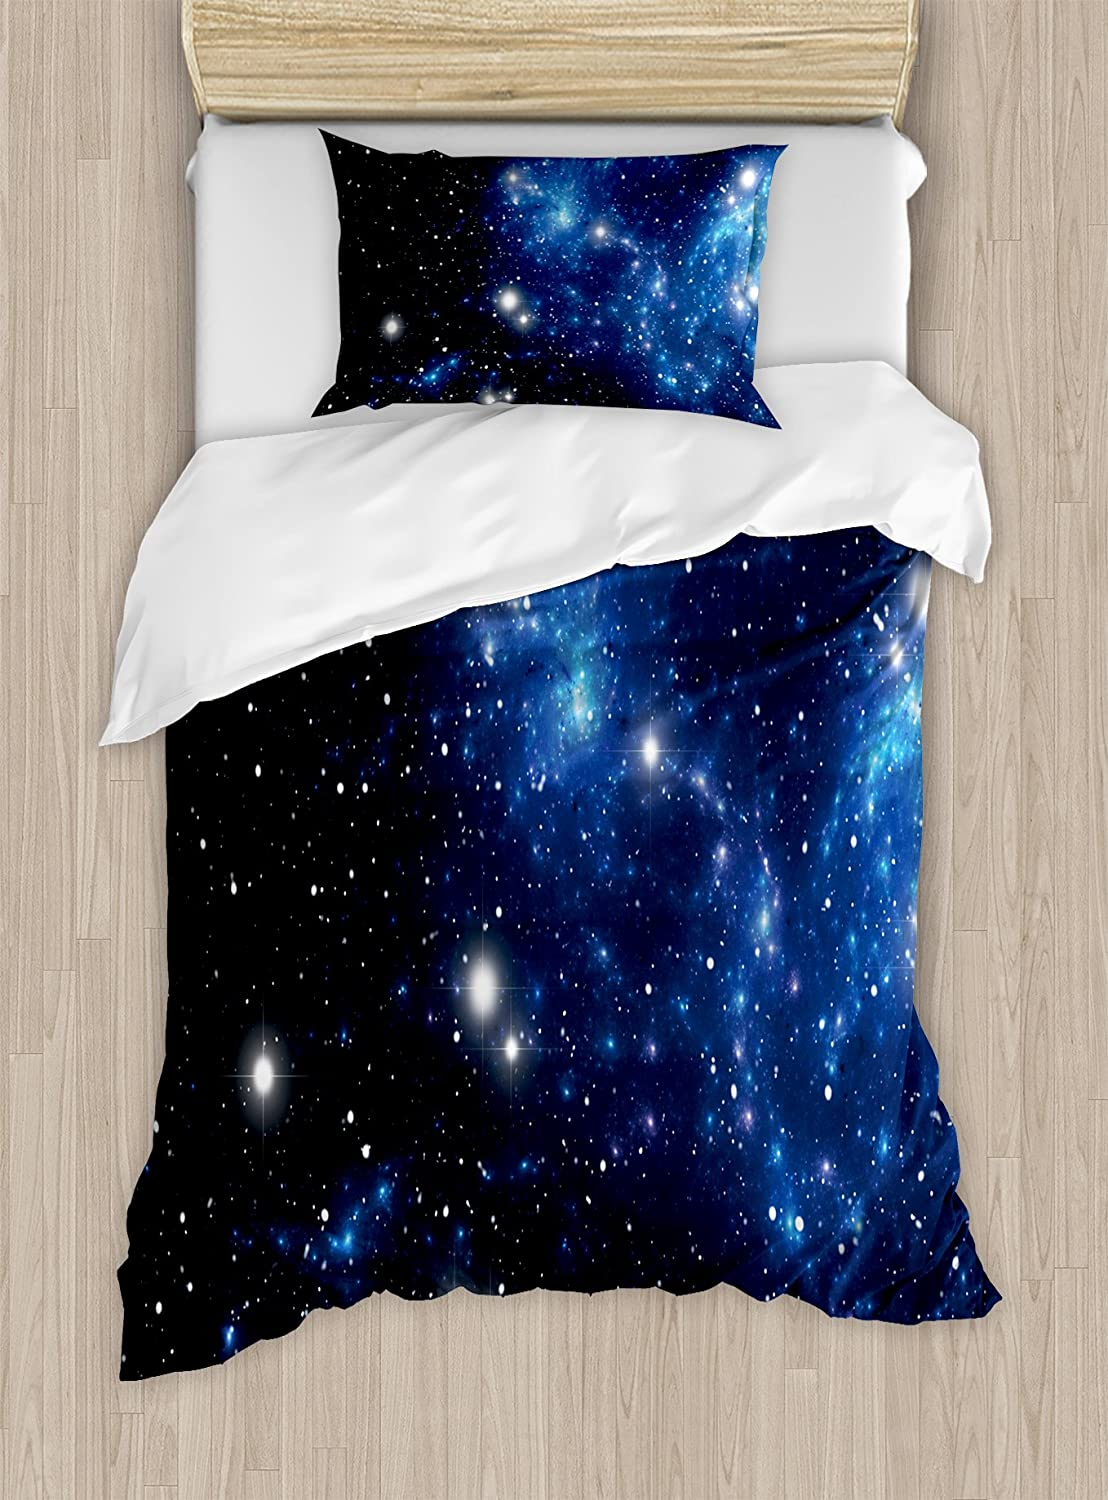 Ambesonne Constellation Duvet Cover Set, Outer Space Star Nebula Astral Cluster Astronomy Theme Galaxy Mystery, Decorative 2 Piece Bedding Set with 1 Pillow Sham, Twin Size, Blue Black